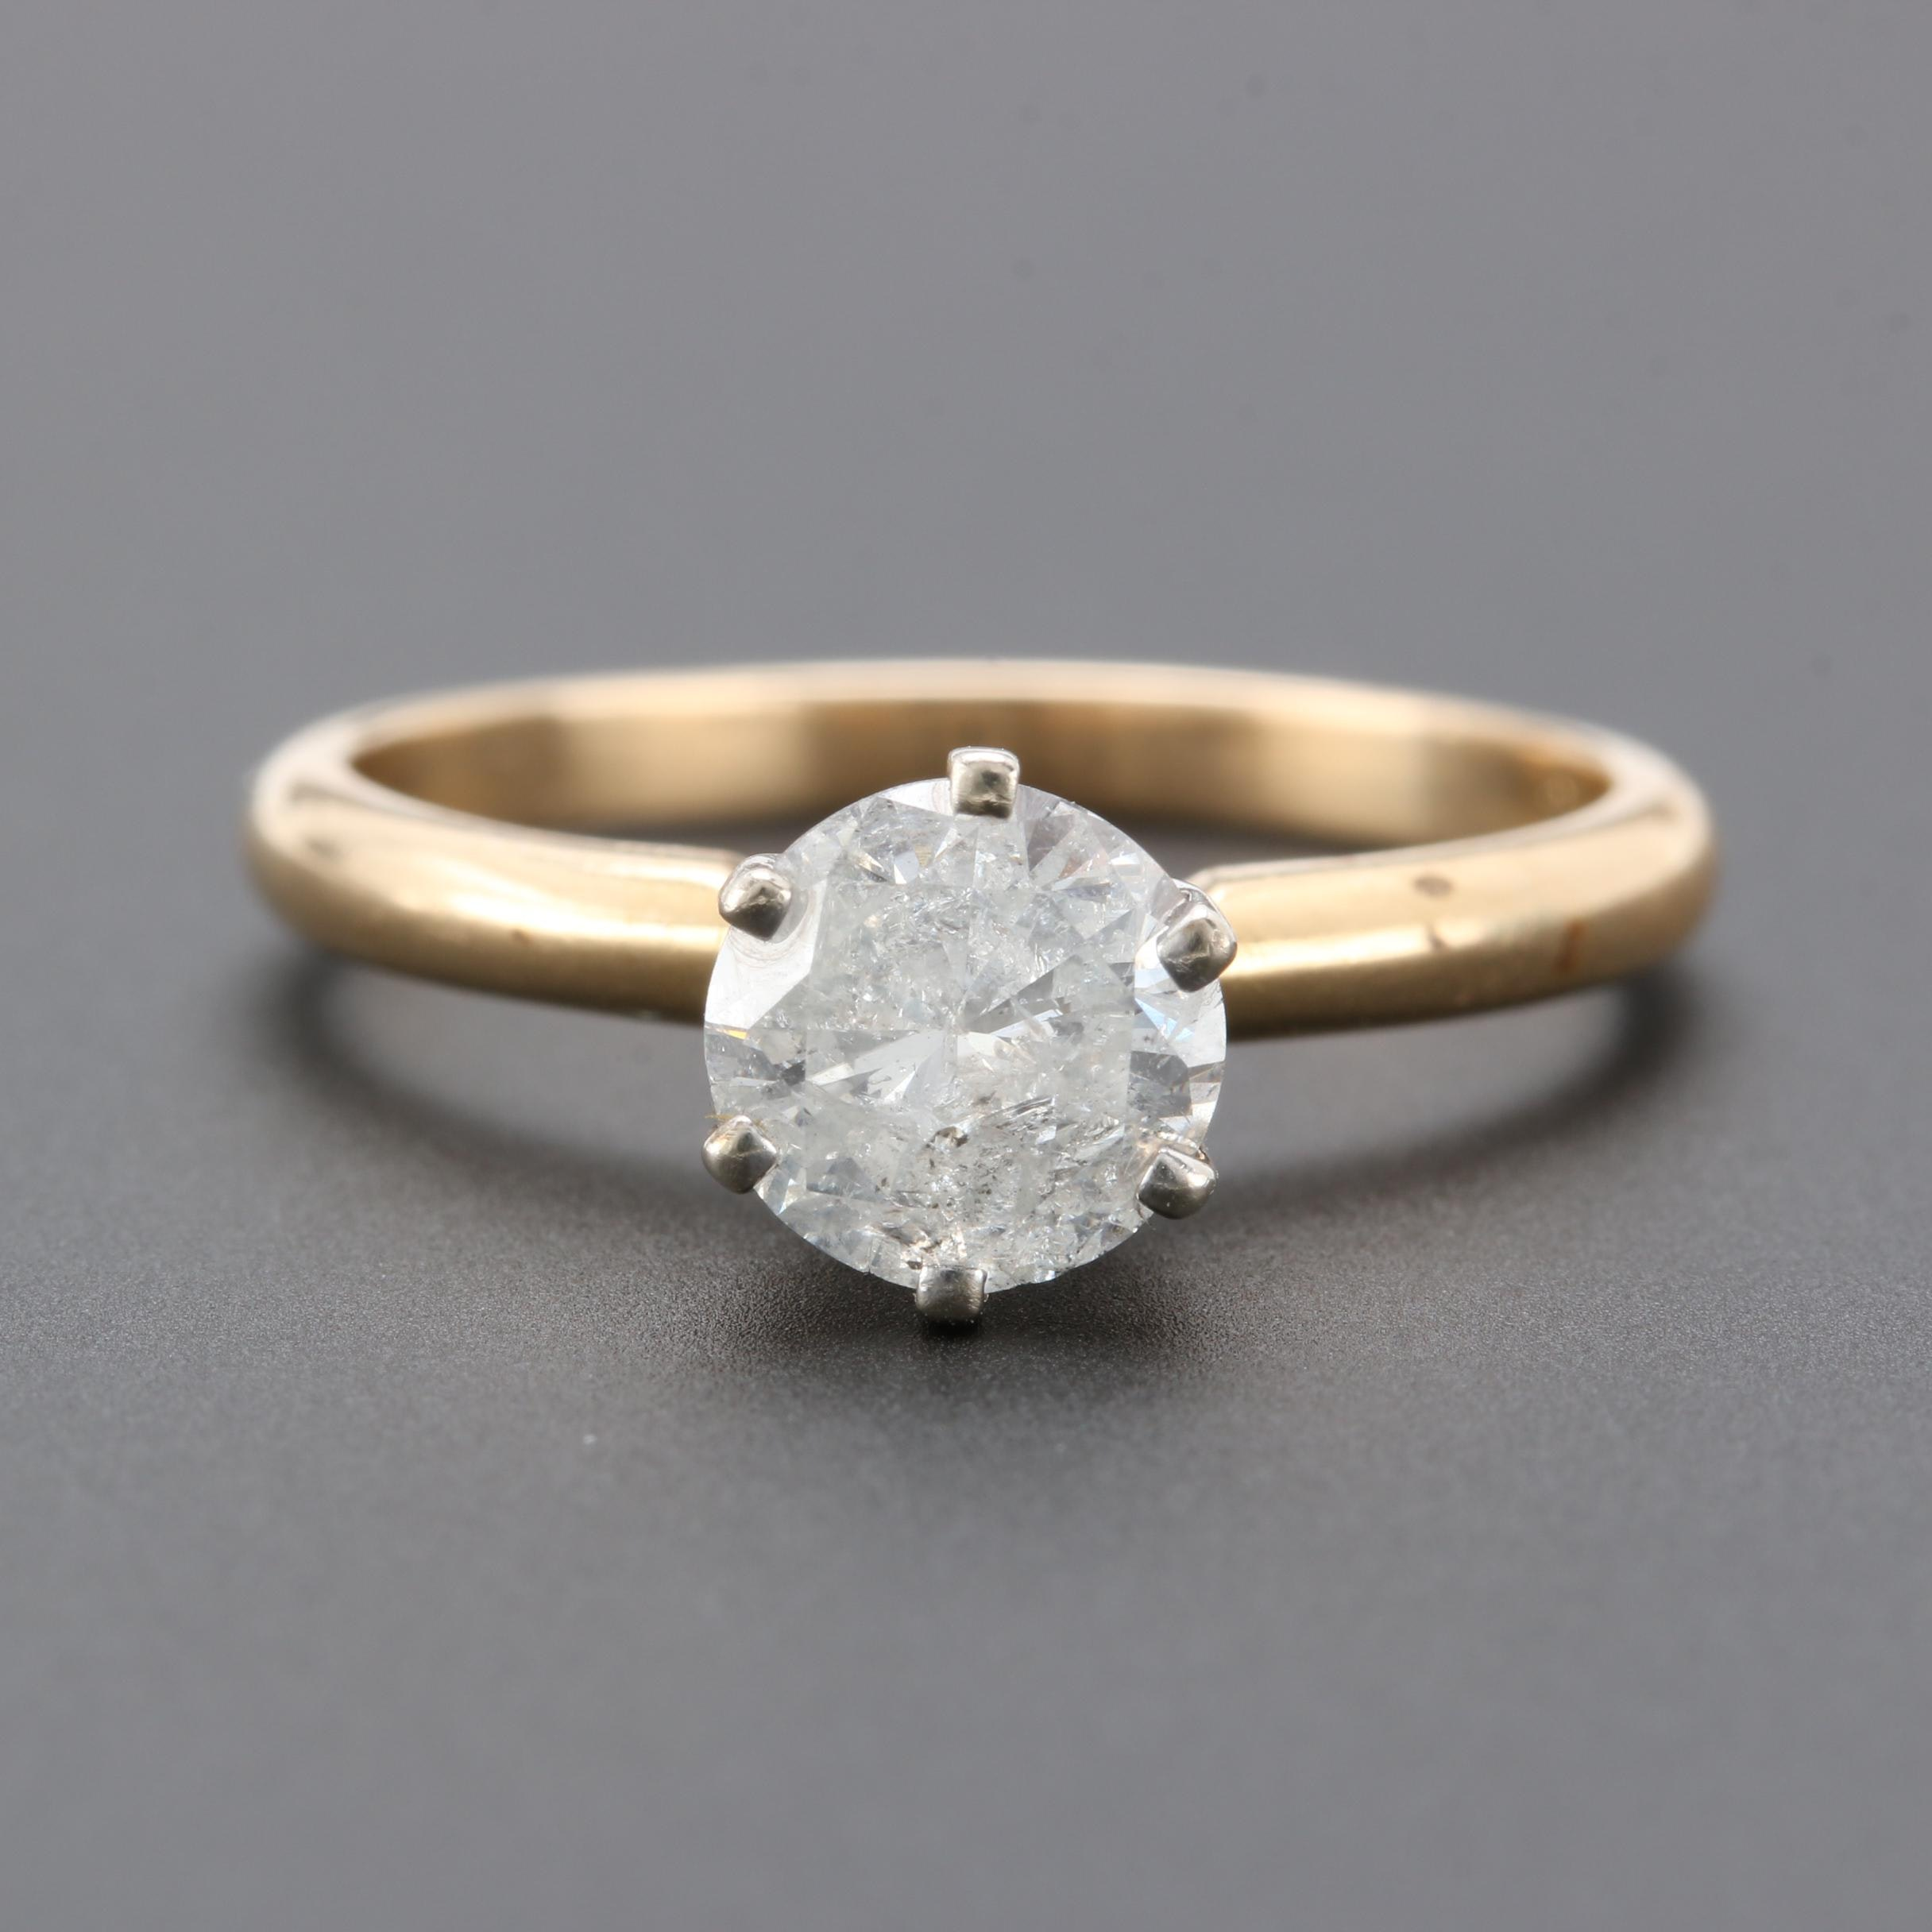 14K Yellow Gold 1.12 CT Diamond Solitaire Ring